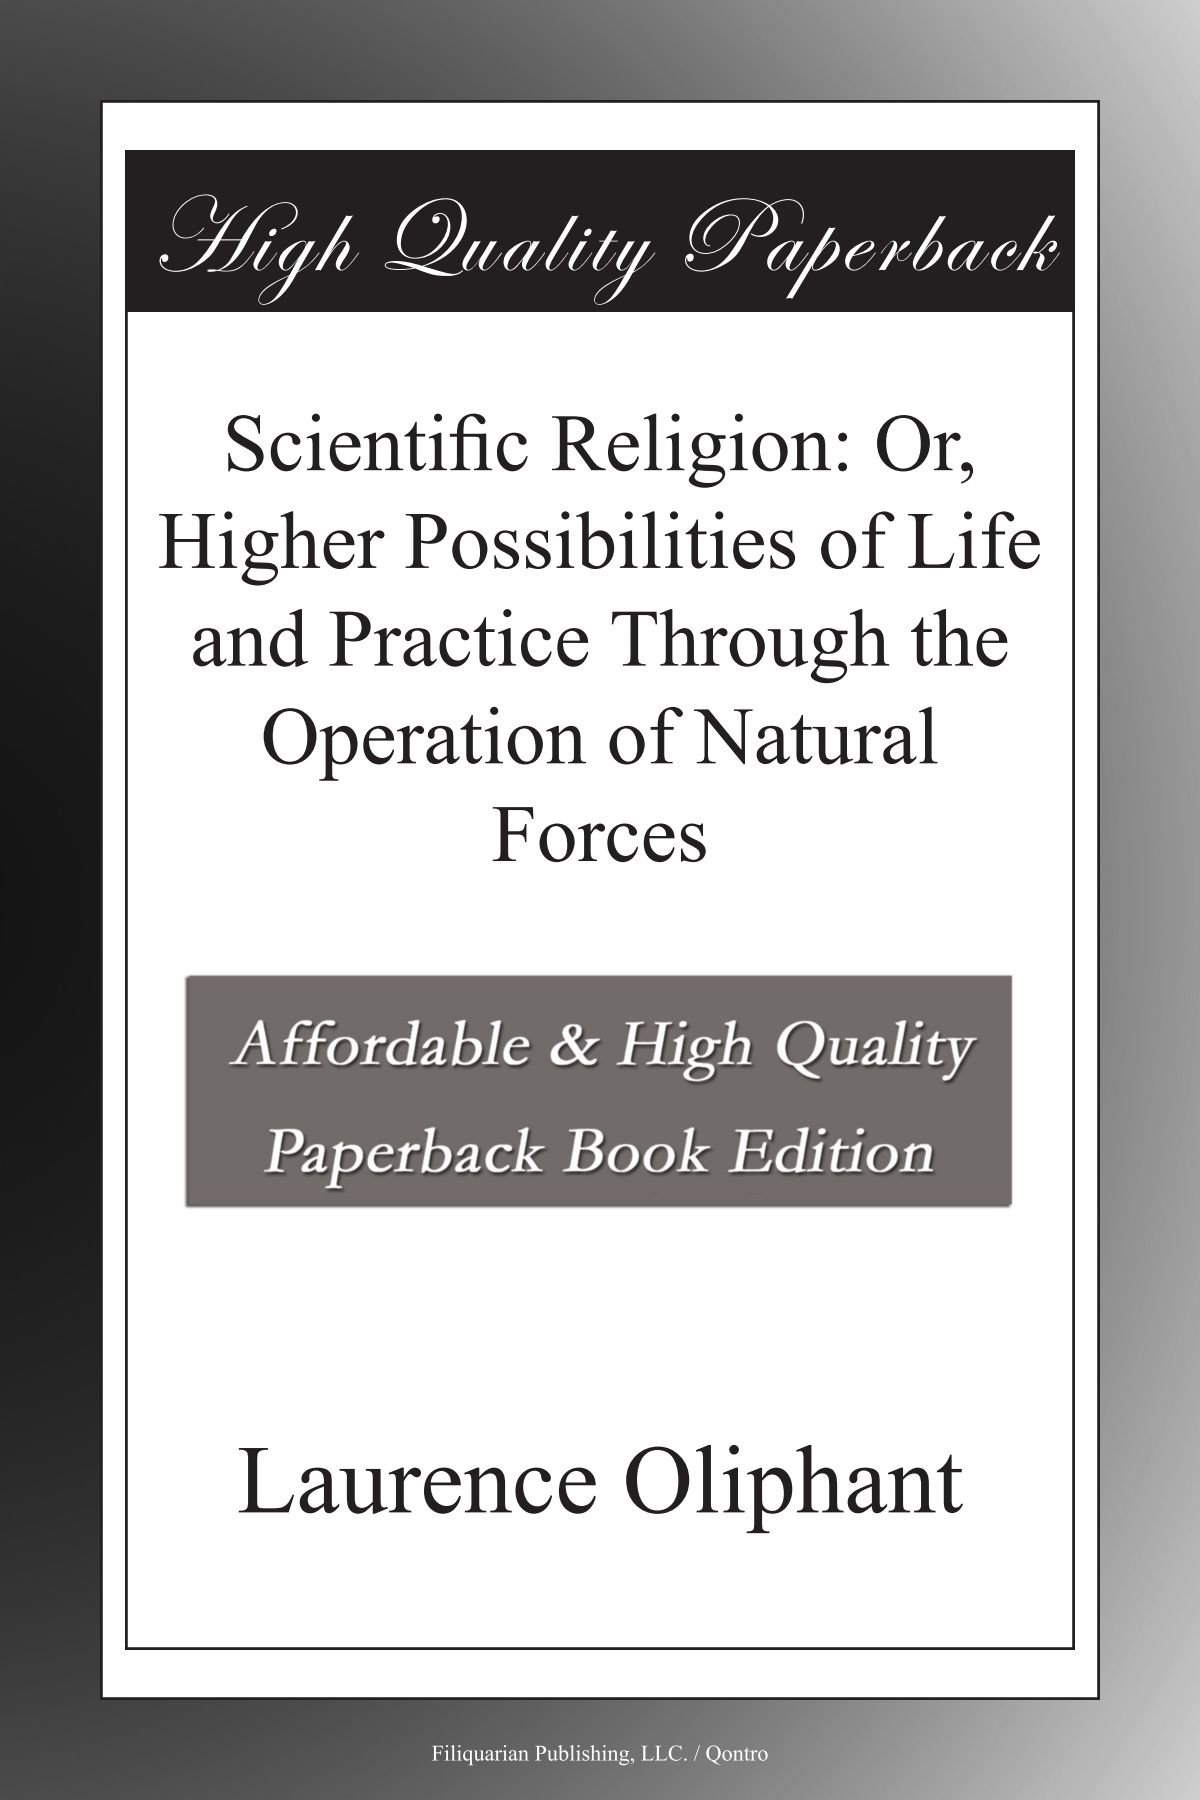 Download Scientific Religion: Or, Higher Possibilities of Life and Practice Through the Operation of Natural Forces ebook